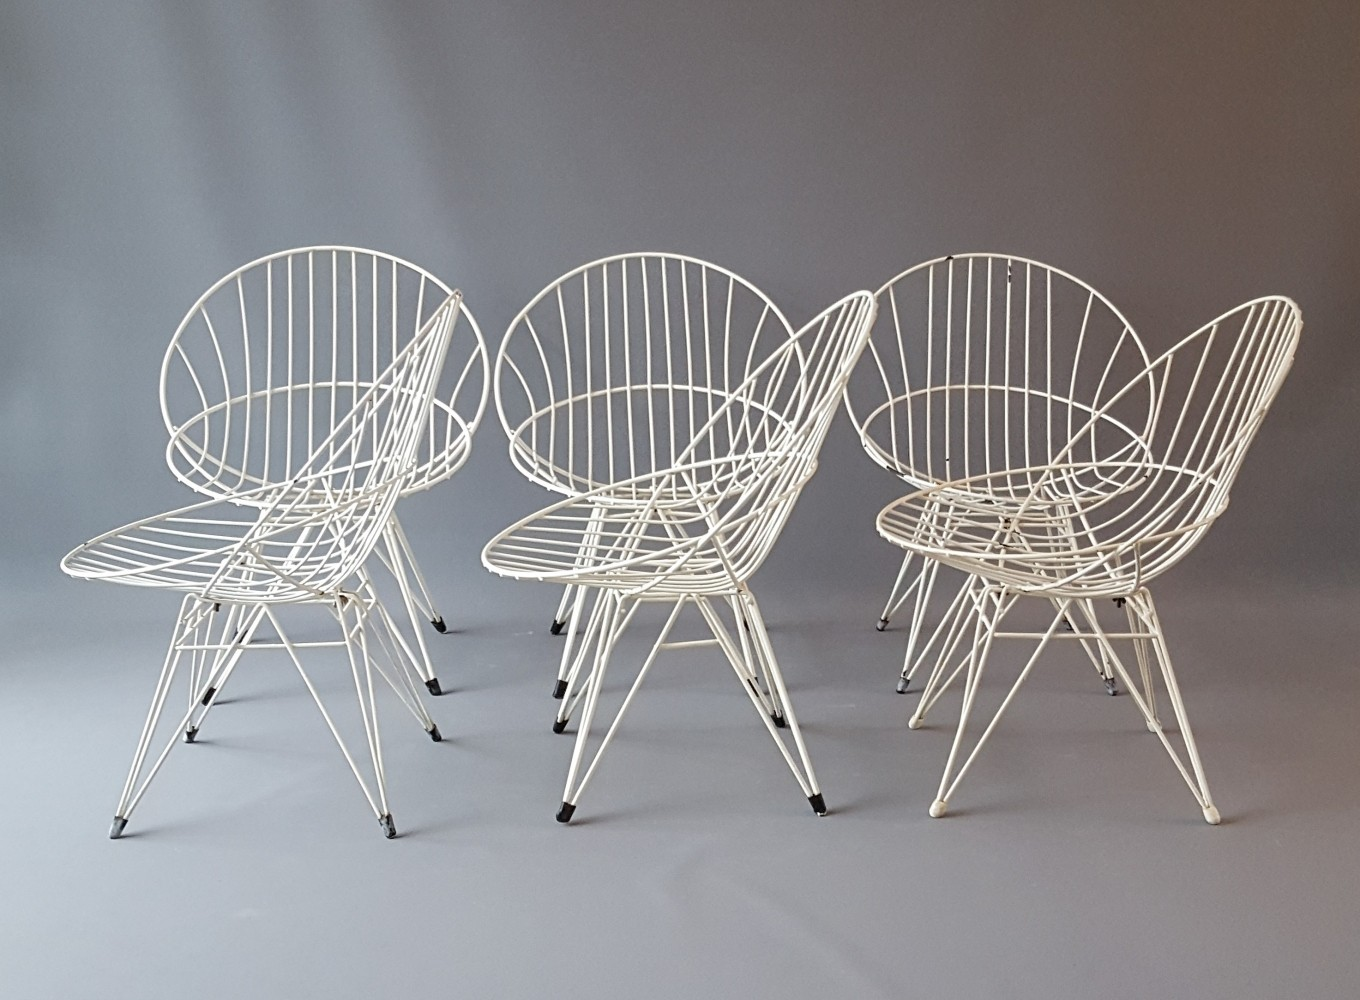 Set of 6 Combex Wire Chairs by Cees Braakman for Pastoe, 1950s